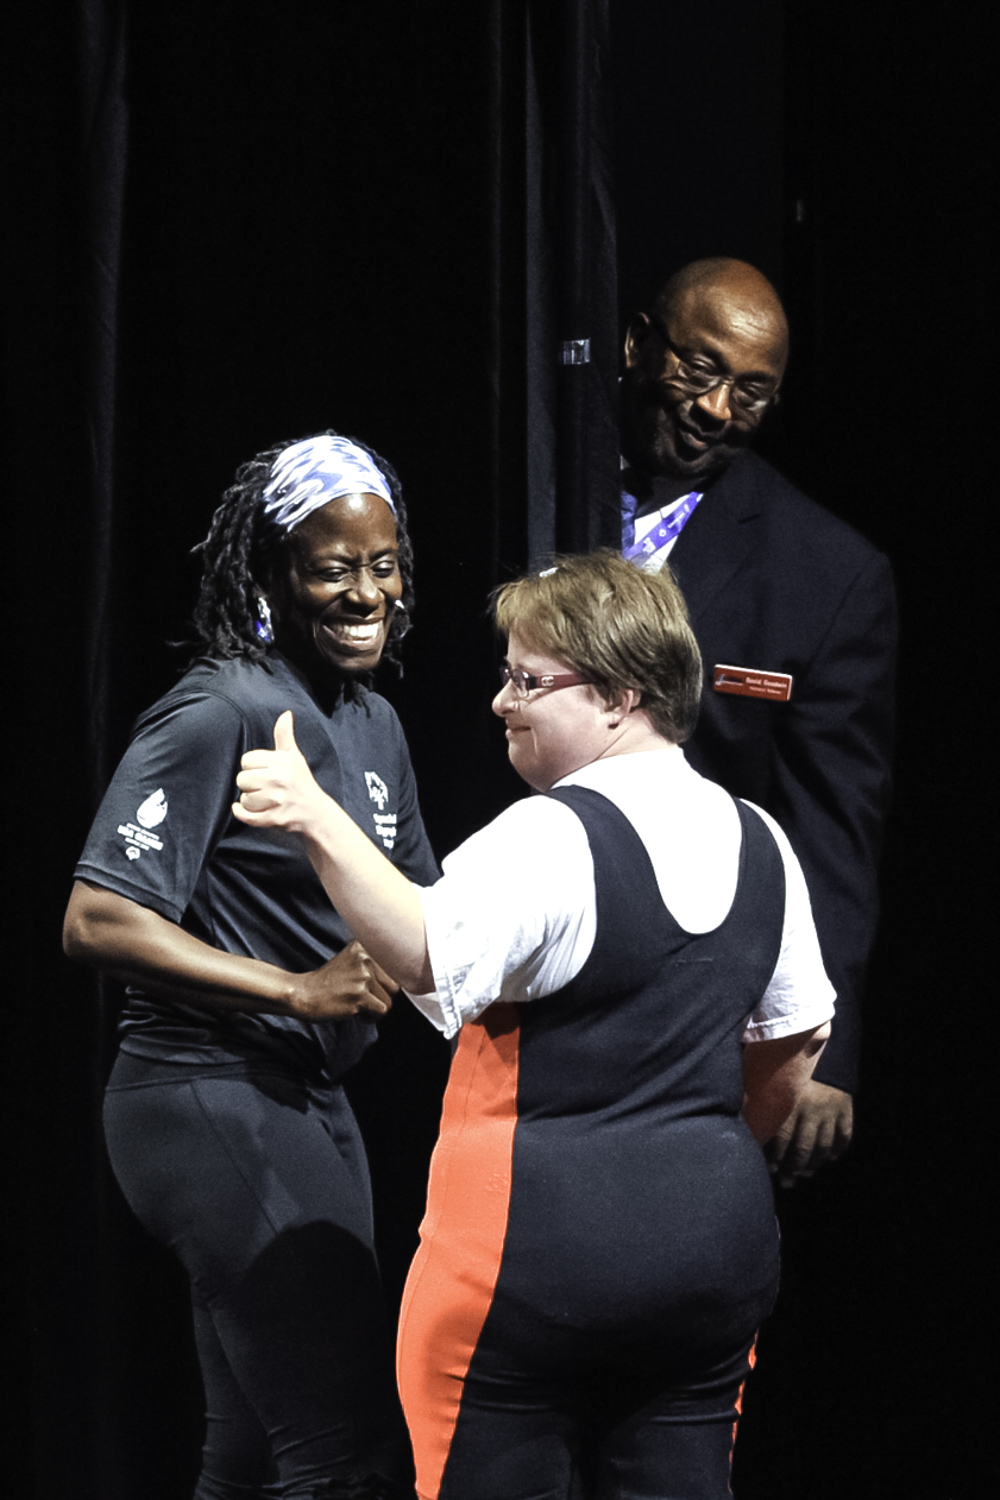 Maryland powerlifter after competing at the Meanie Hall for the Performing Arts of the University of Washington.